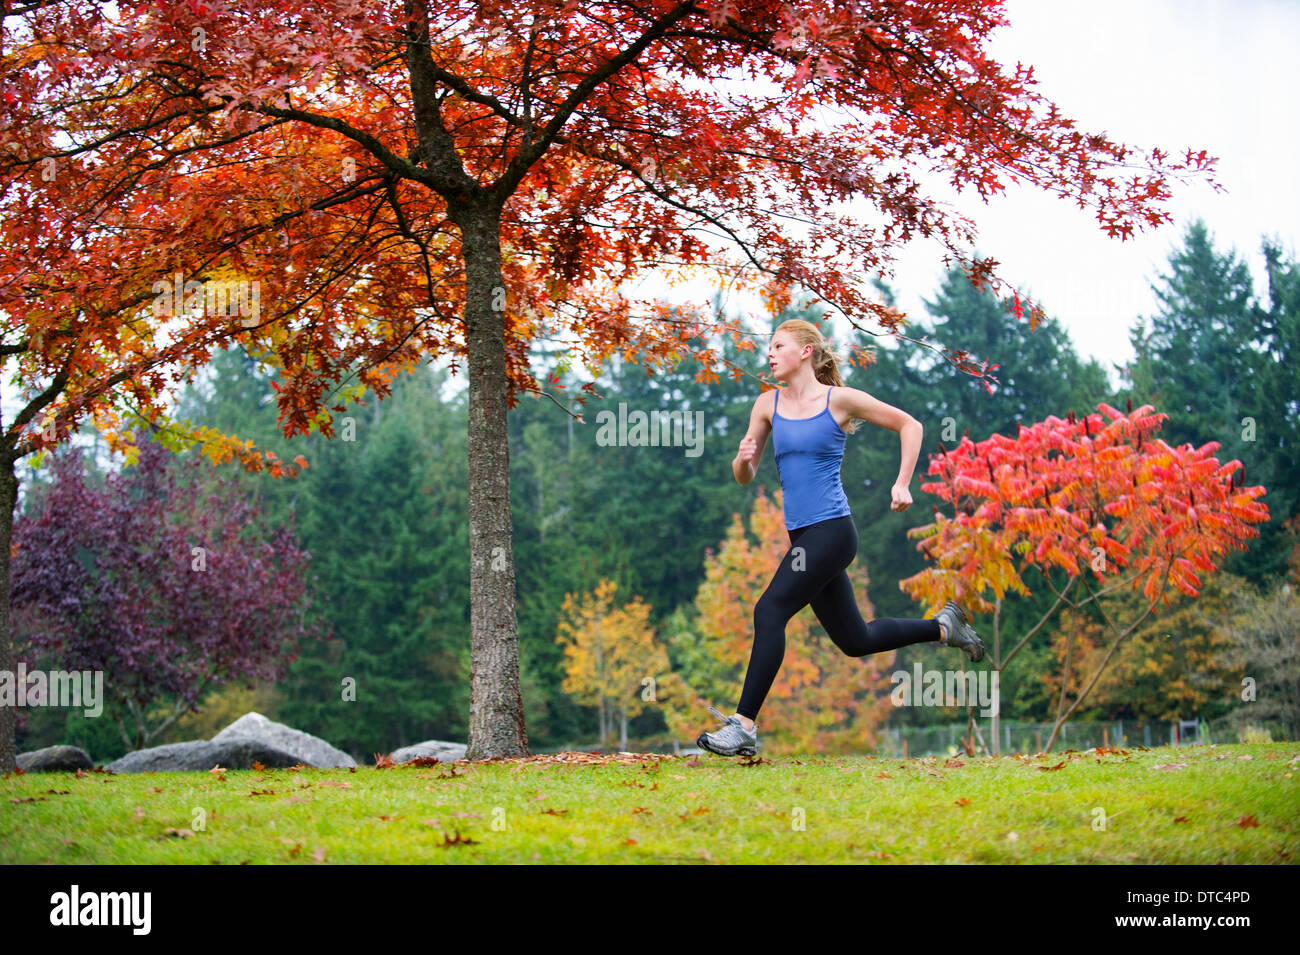 Girl jogging in forest - Stock Image